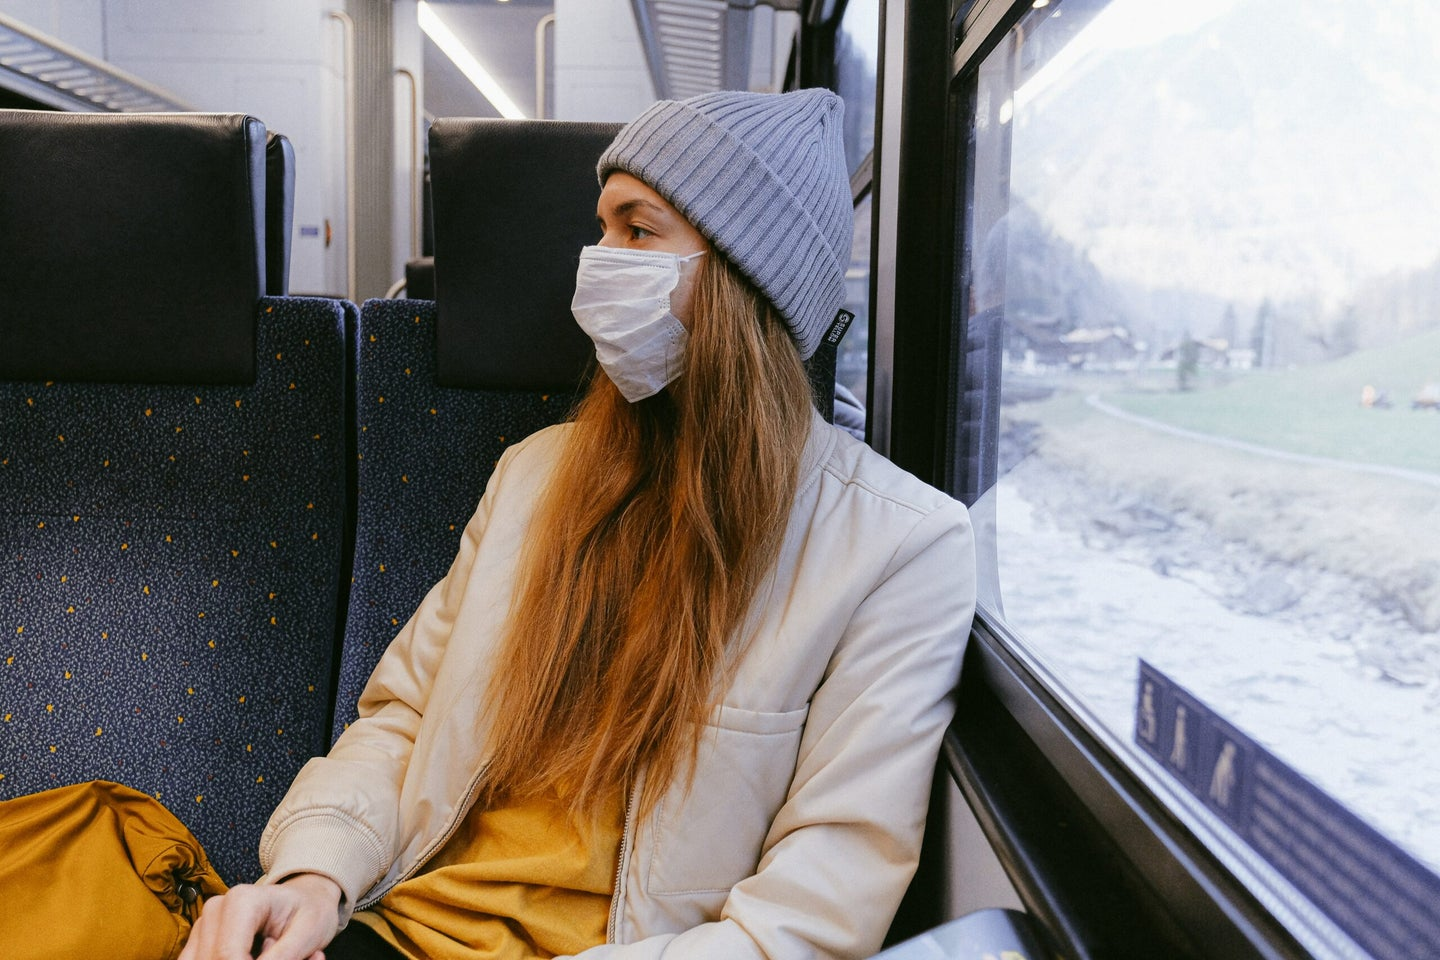 person wearing a mask on the train